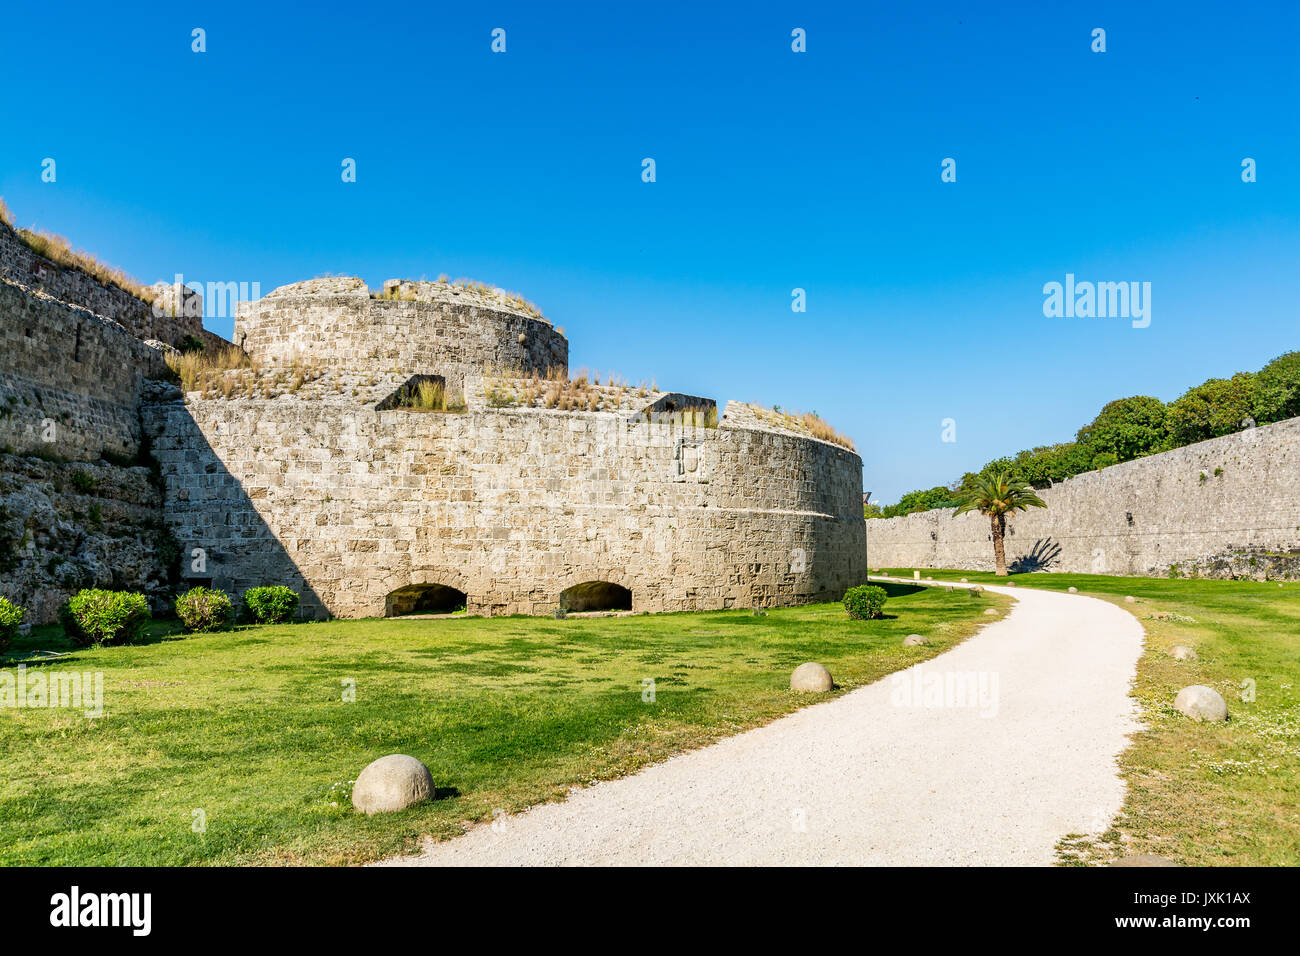 Post of Italy (Del Carretto Bastion), one of the sections of the Rhodes old town walls, Rhodes island, Greece - Stock Image